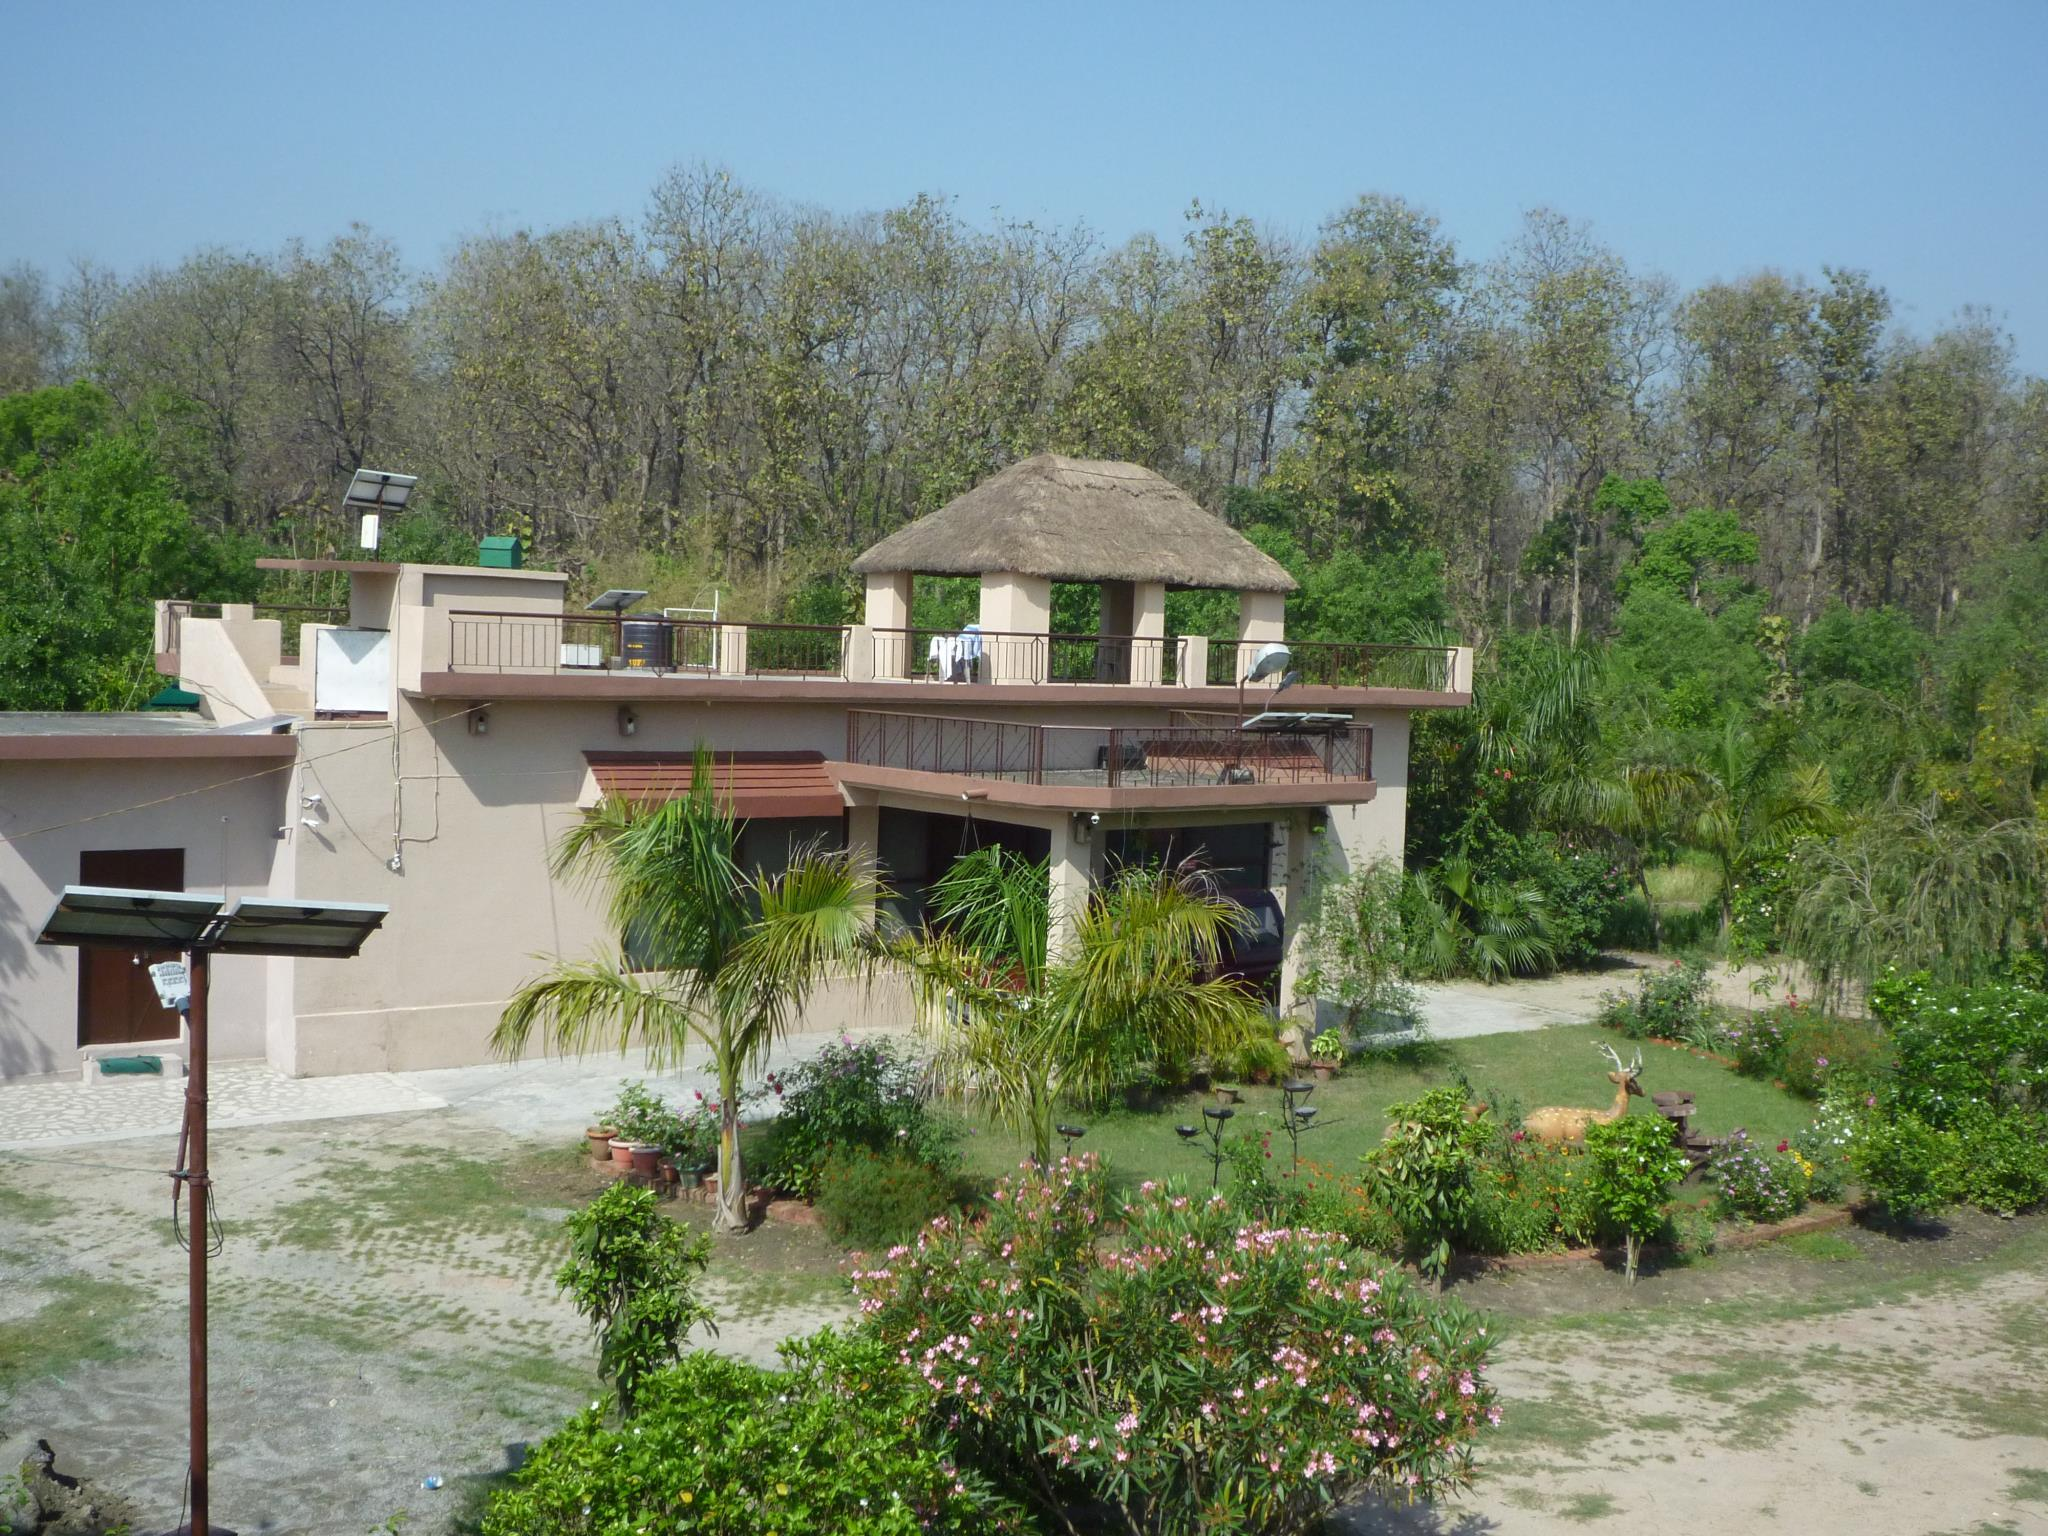 V Resorts Dudhwa Wilderness Camp, Lakhimpur Kheri